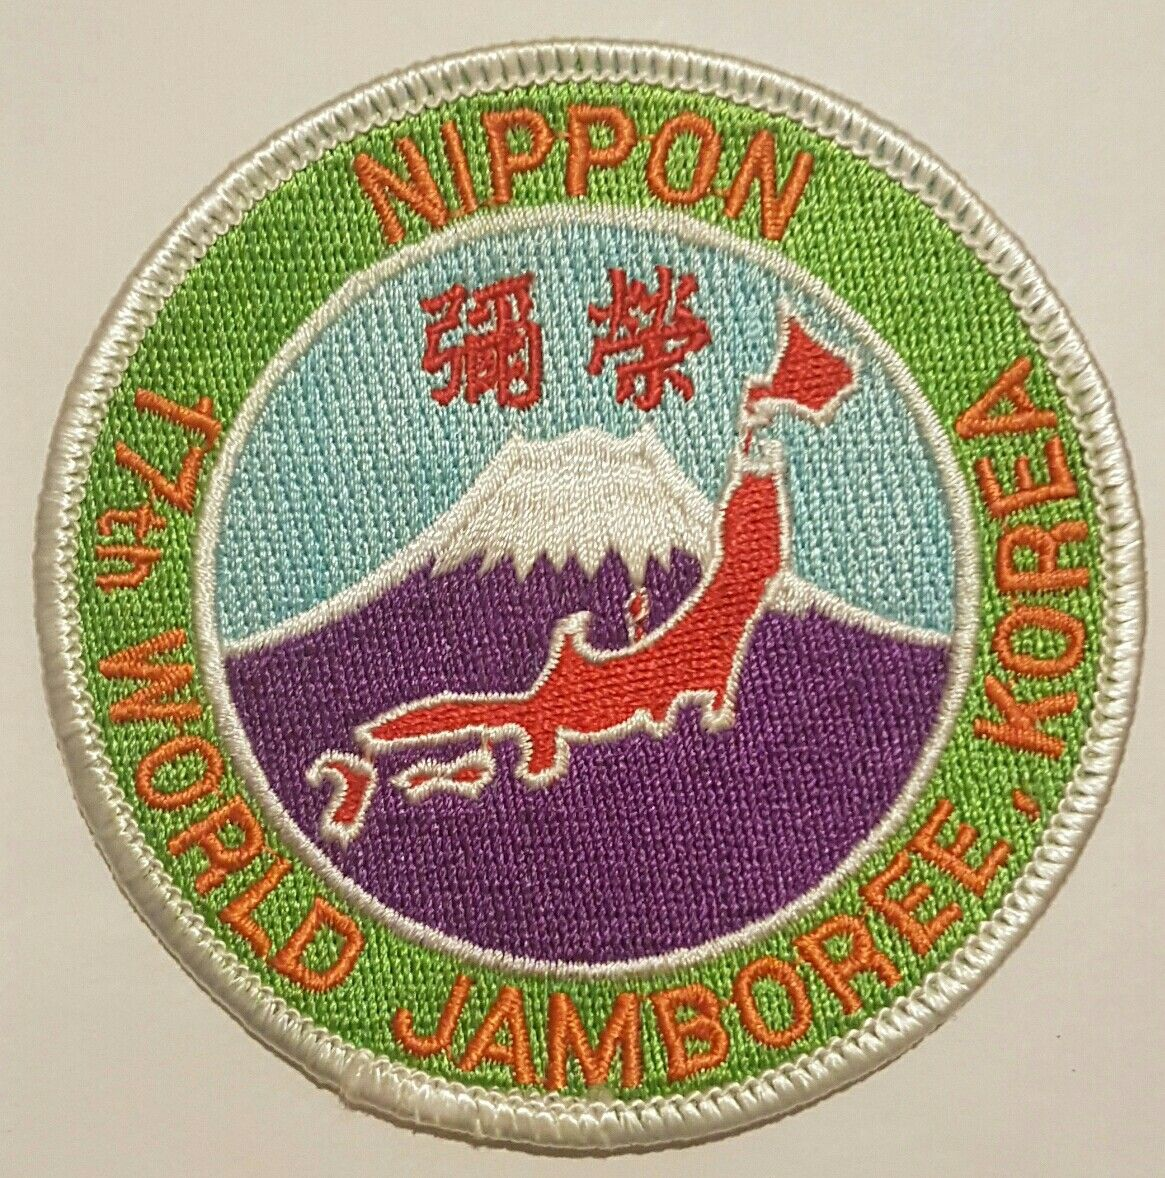 Pin By Alistair Constable On 17th World Scout Jamboree